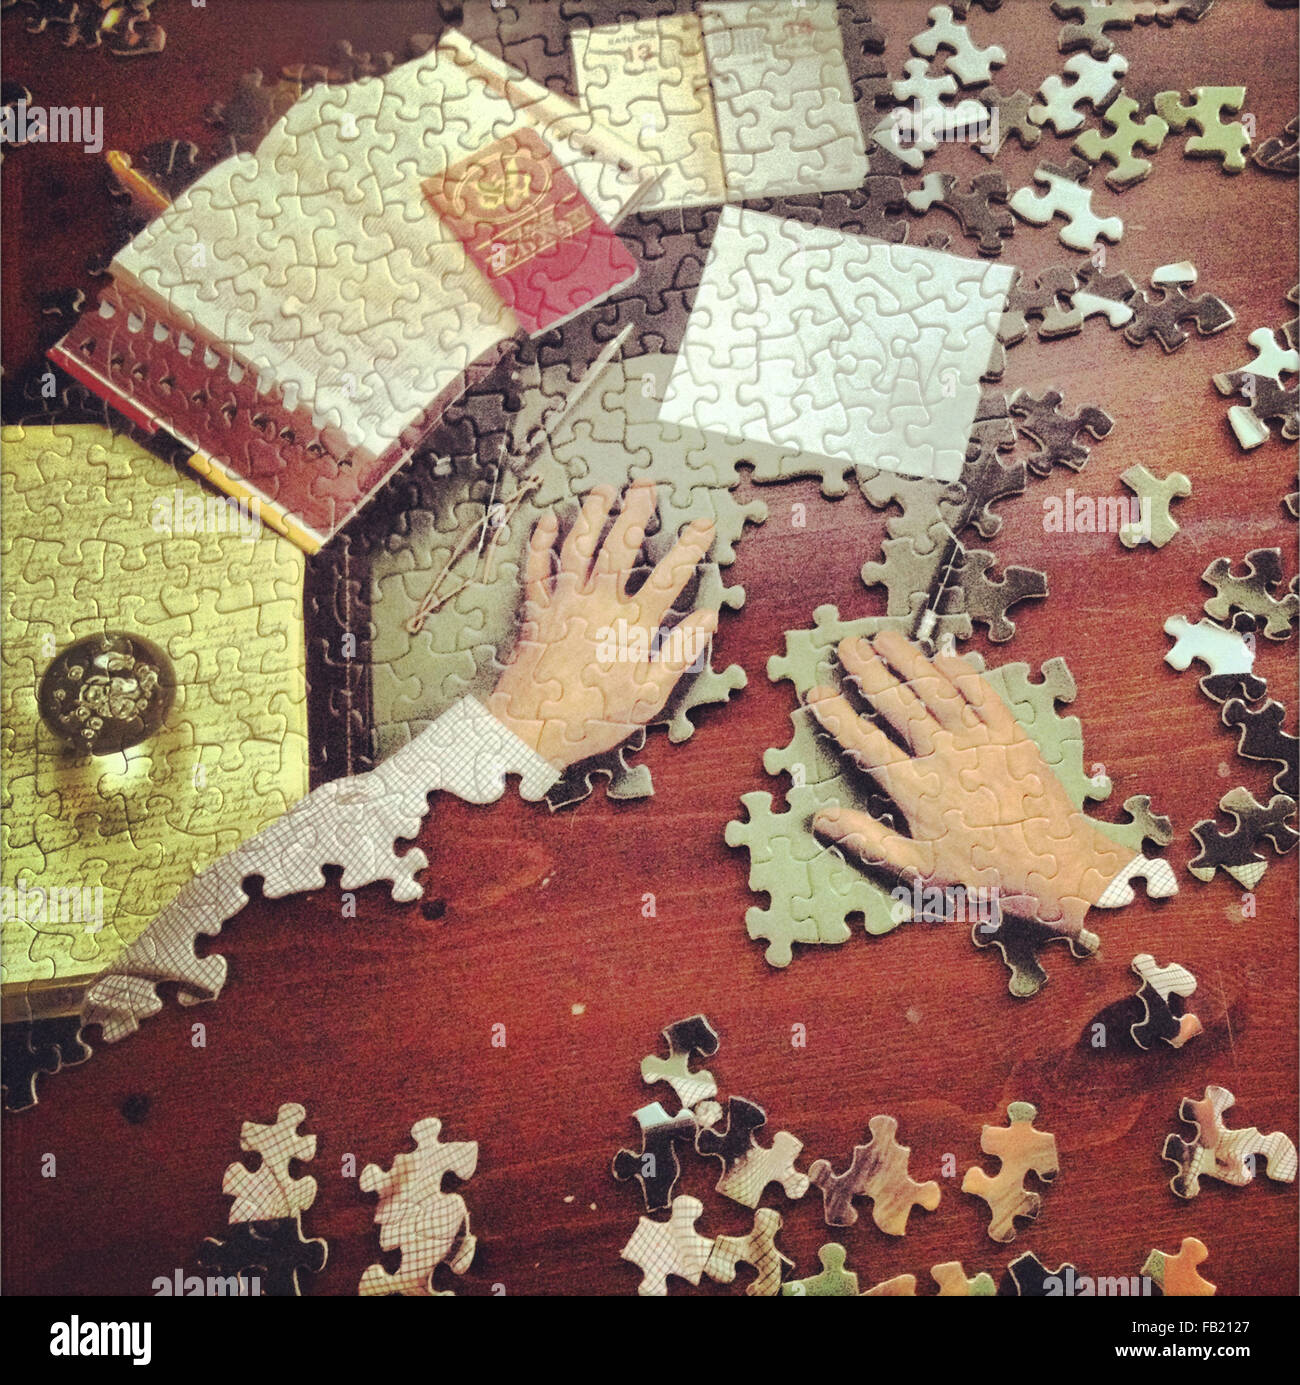 partially completed puzzle of hands - Stock Image